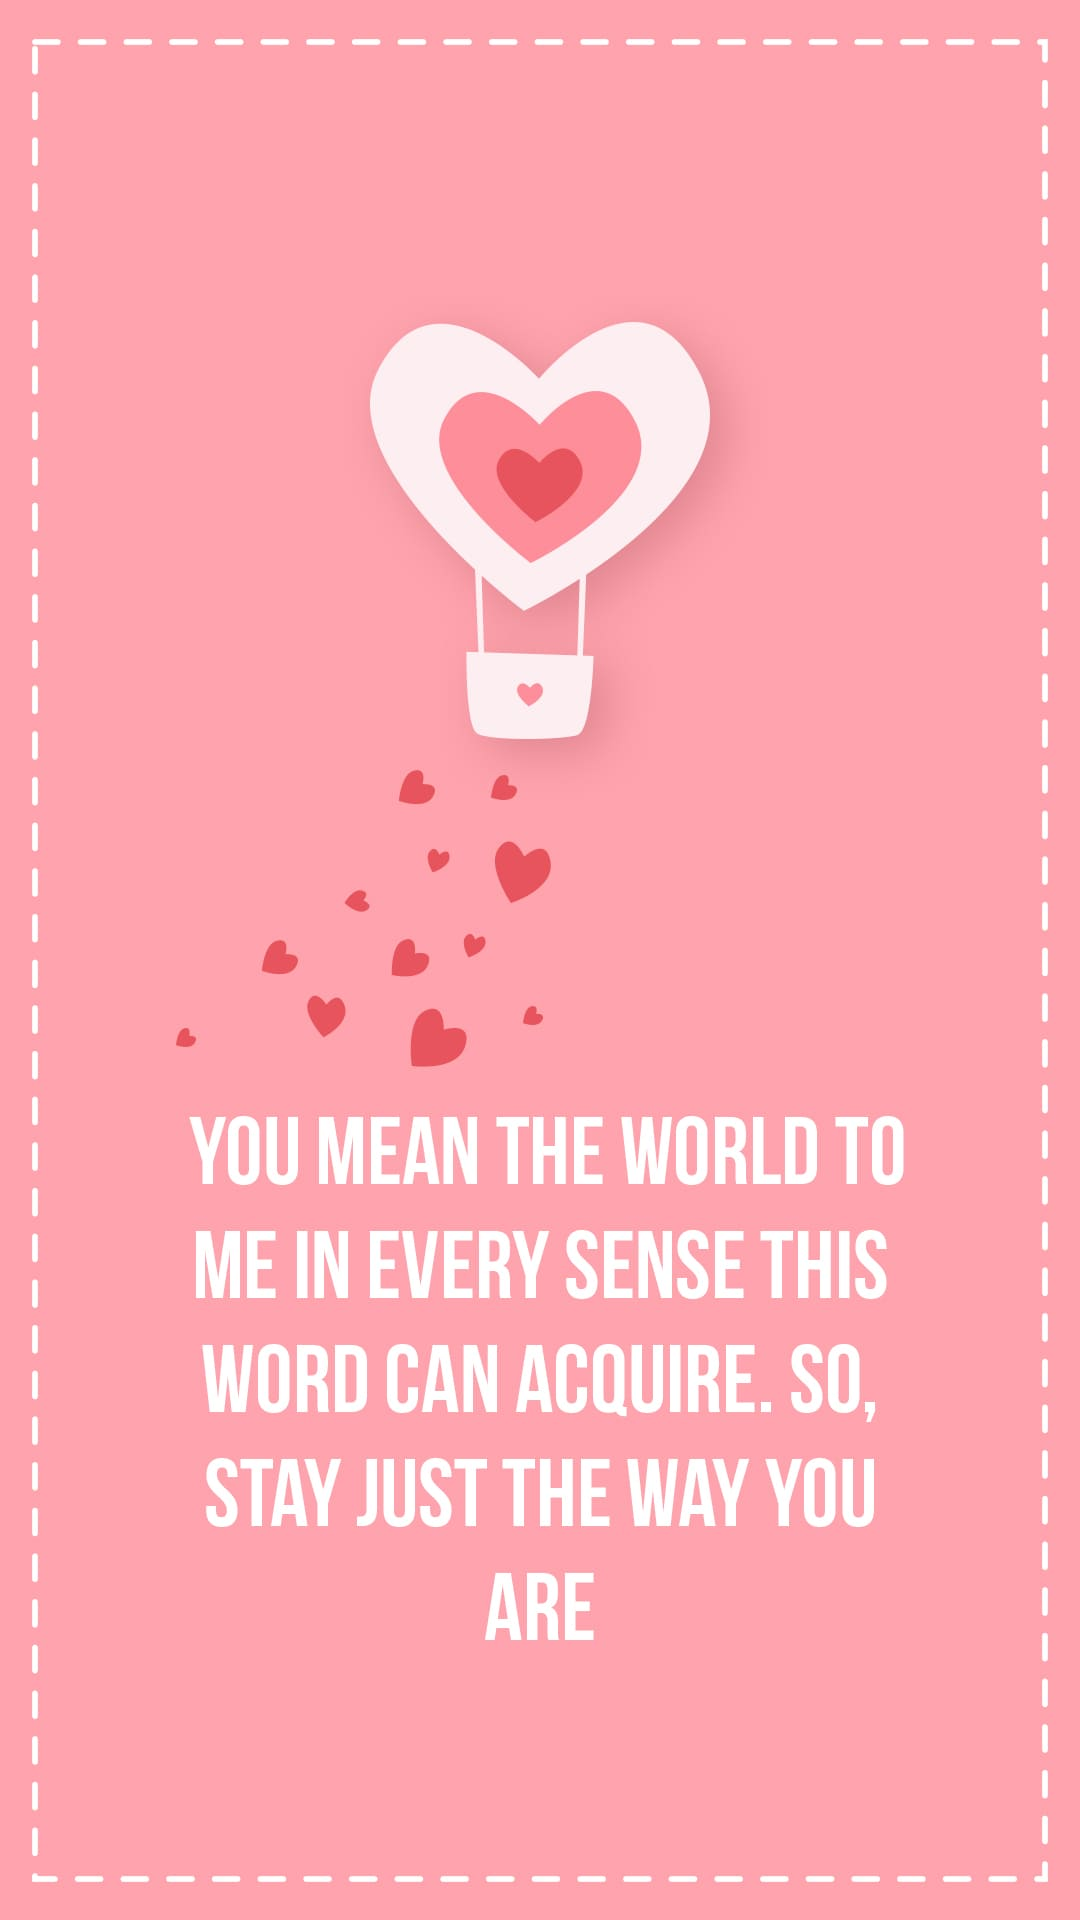 40+ Awesome Valentine's Day Quotes 2021 😍 - valentines day quotes for him 1